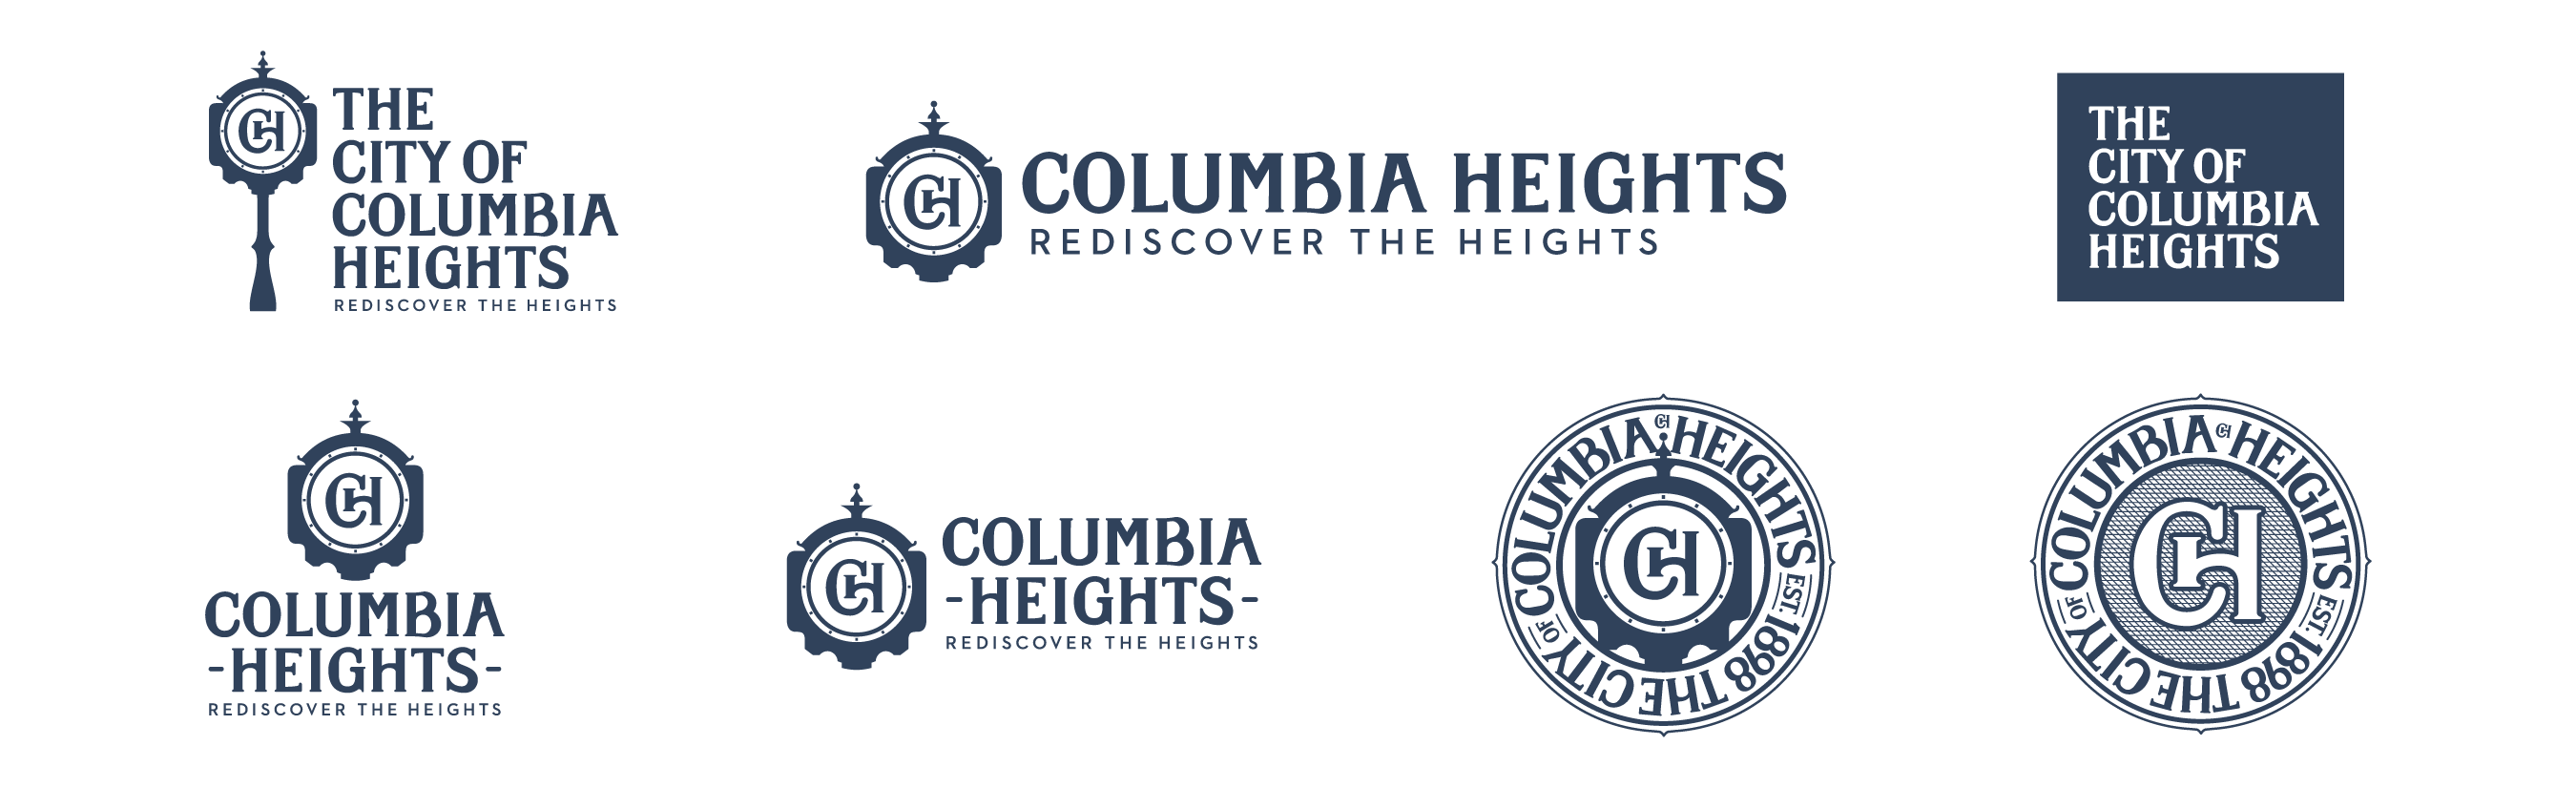 The City of Columbia Heights - Replace f562030bf4f38